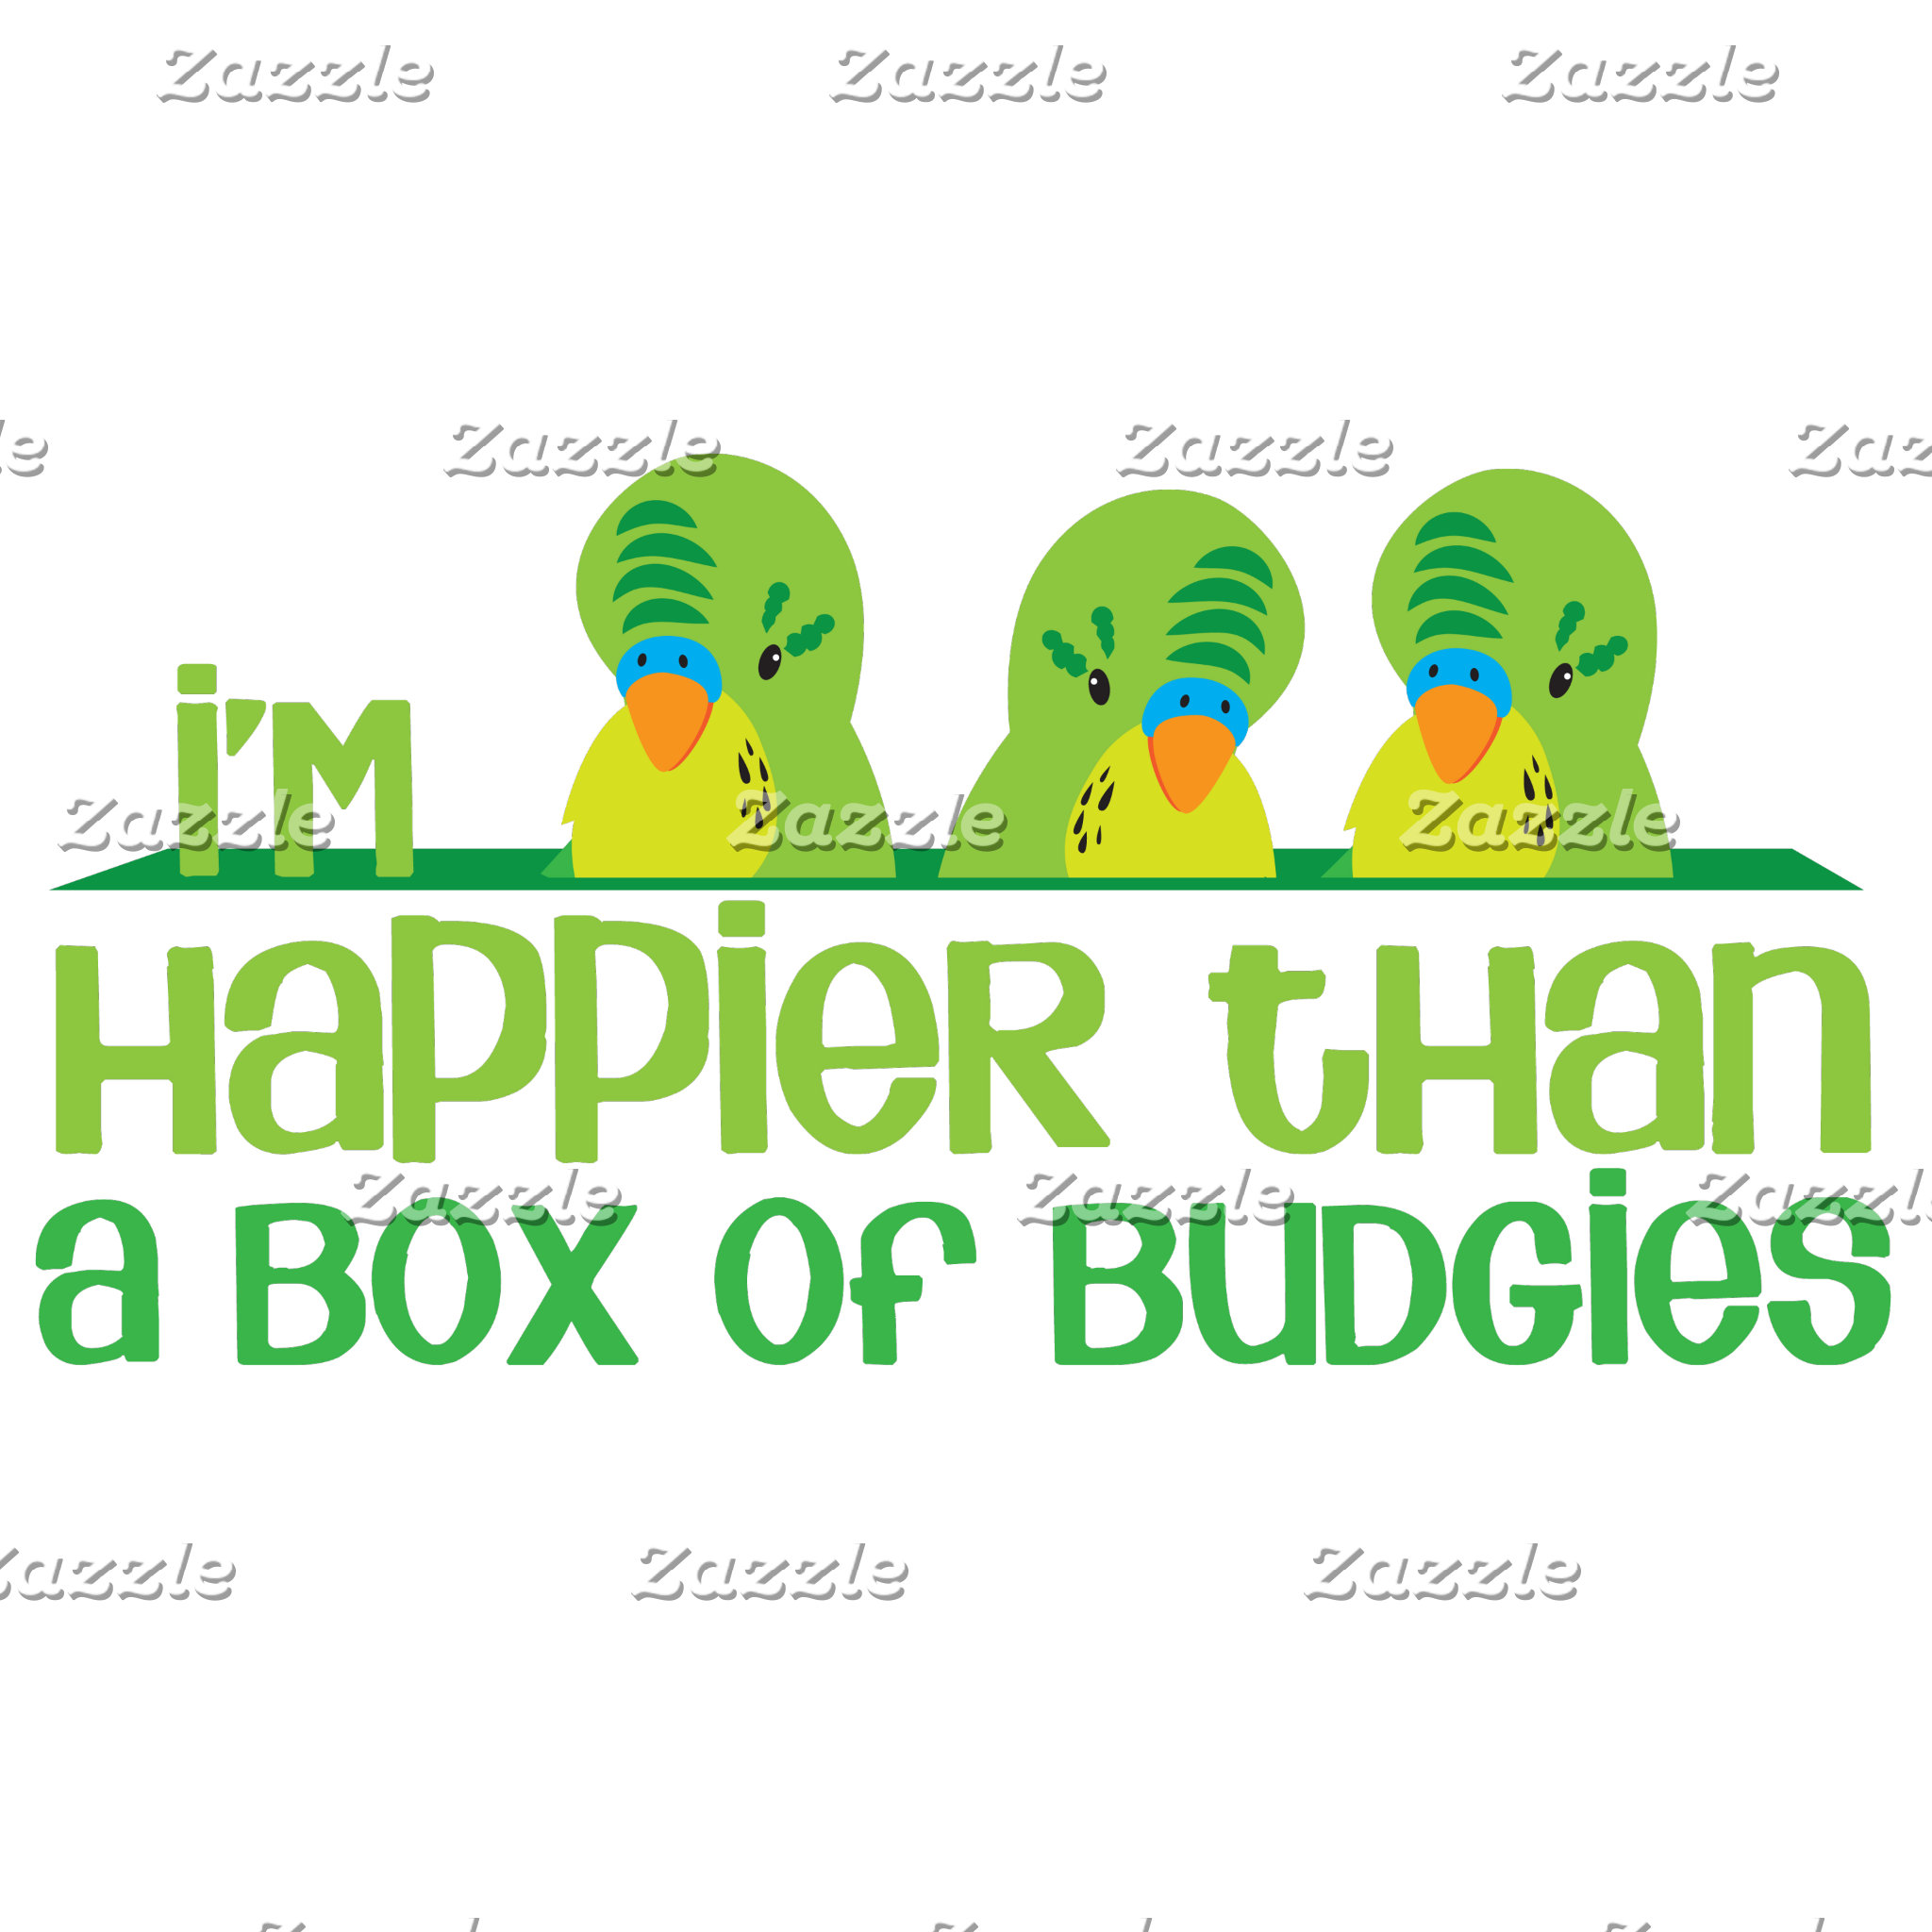 I'm happier than a box of budgies